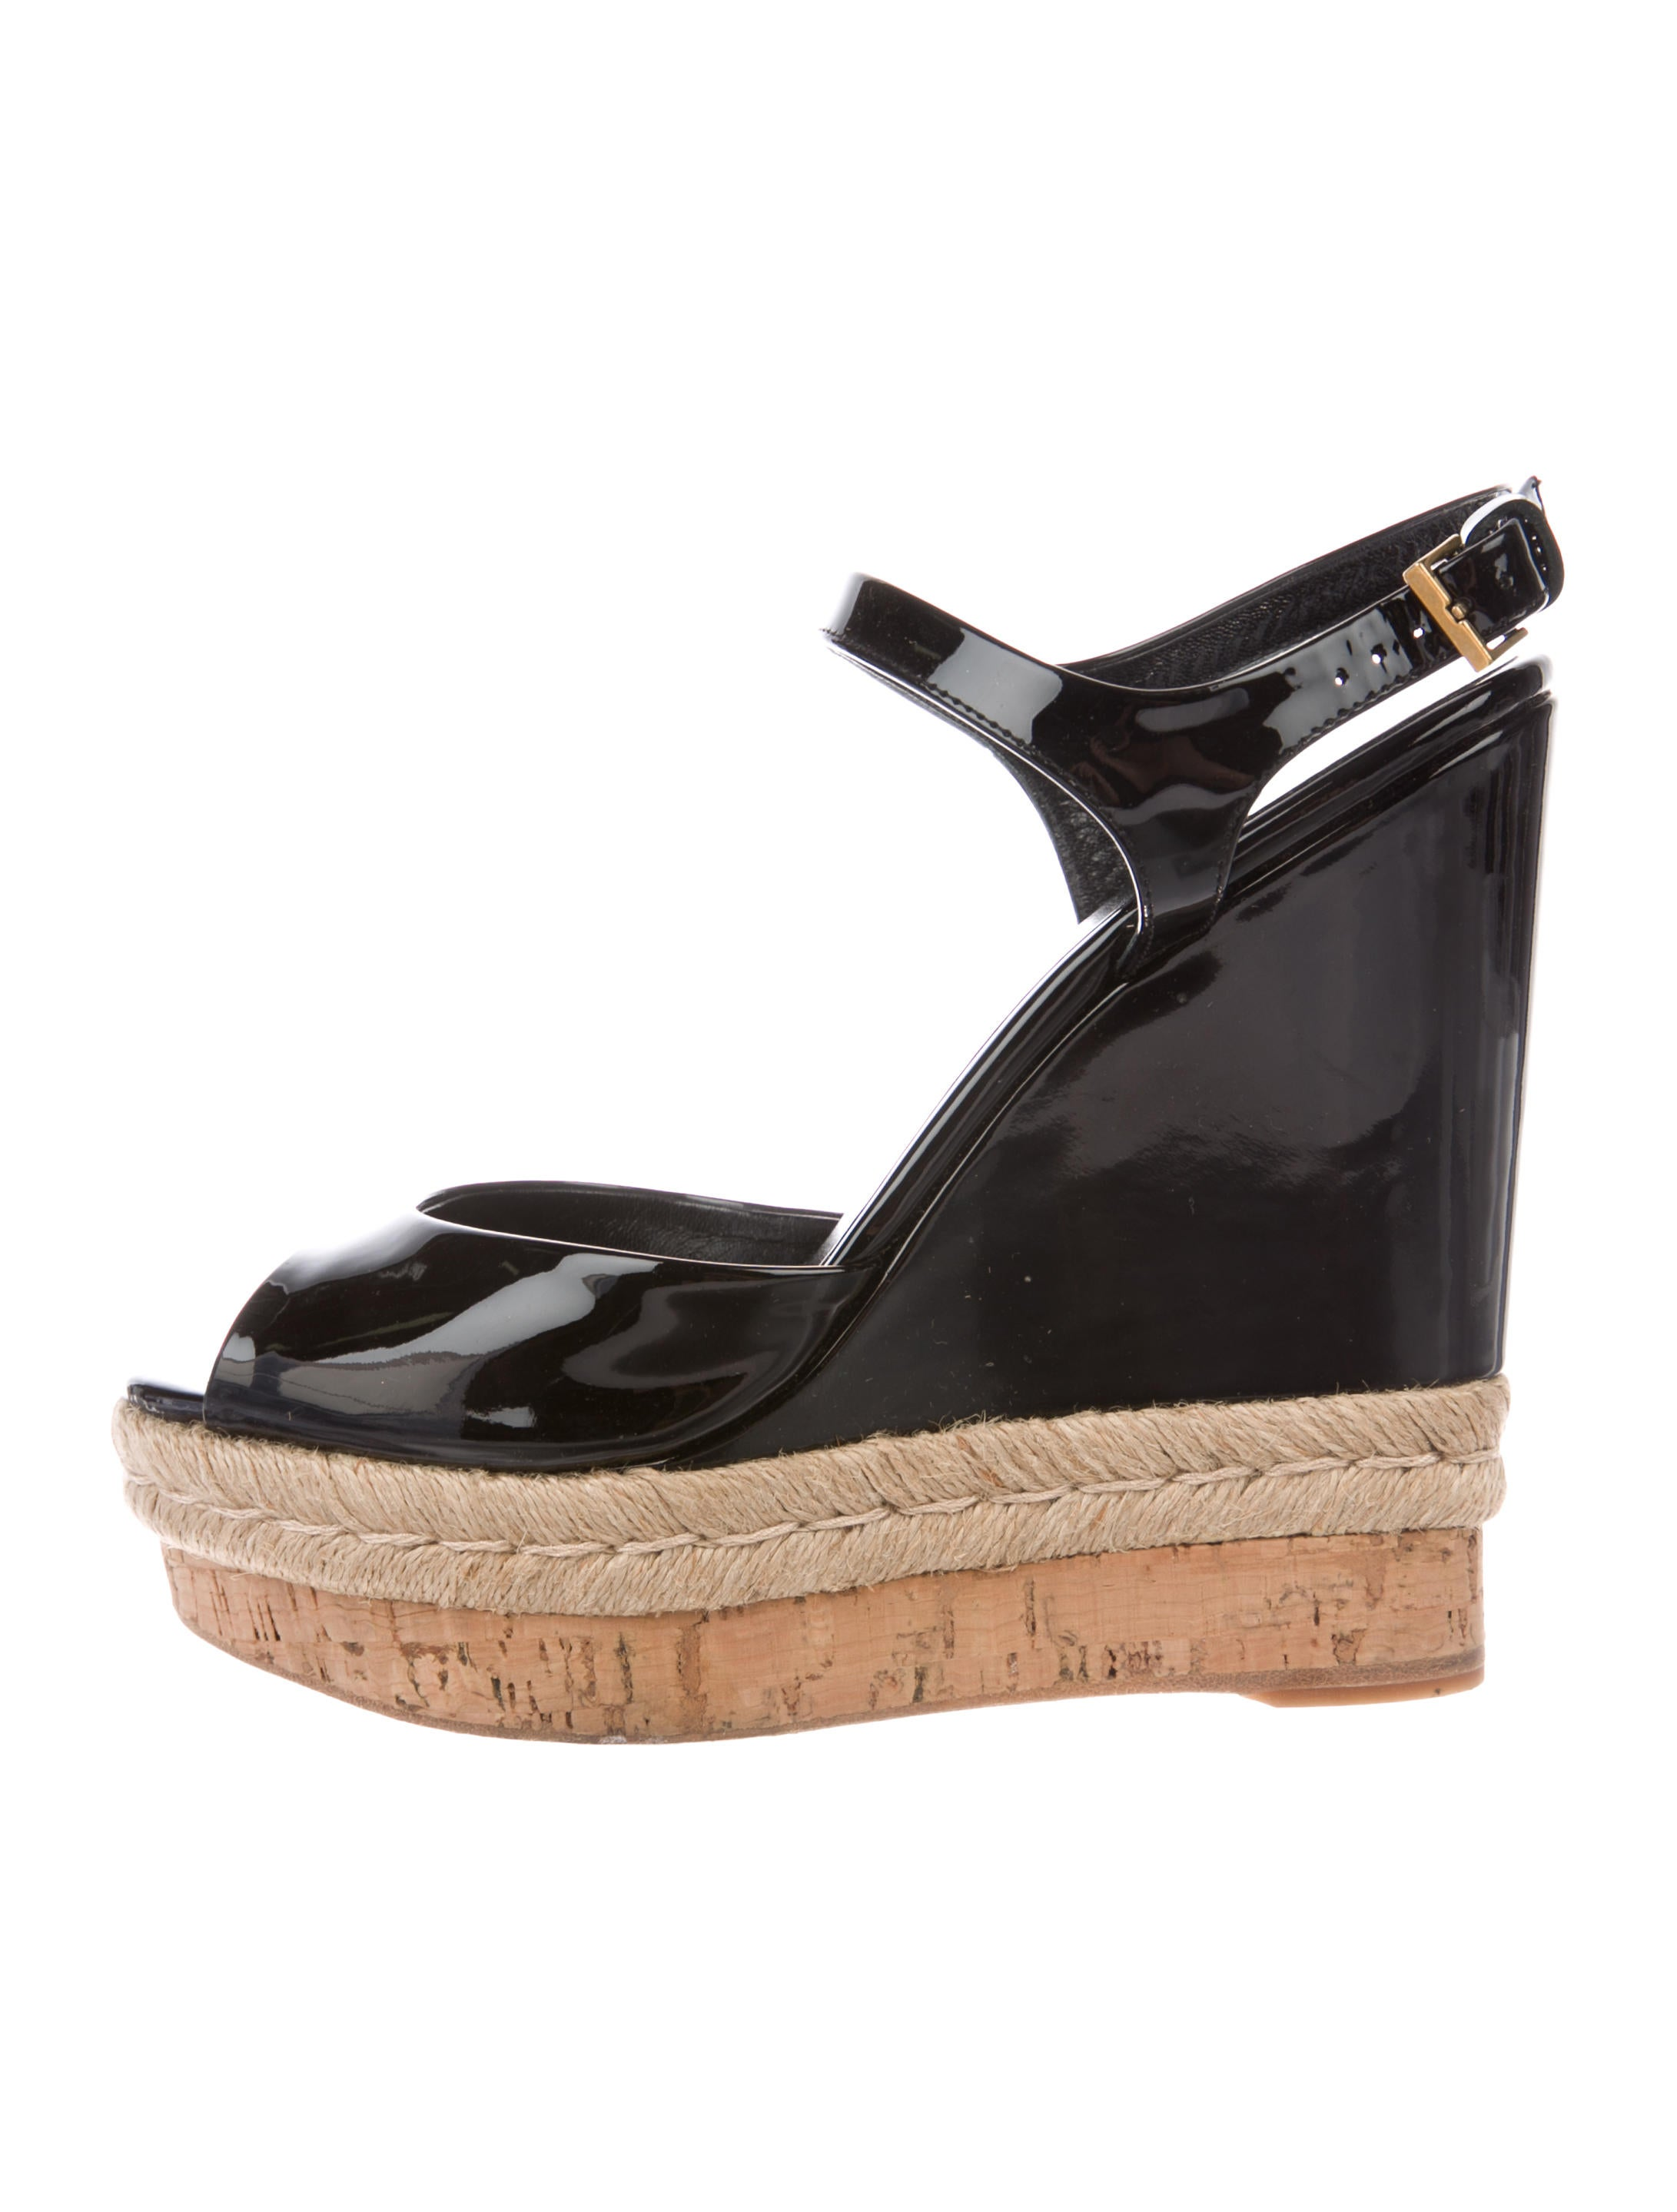 a1e73976ec00 Gucci Patent Leather Wedge Sandals - Shoes - GUC223899